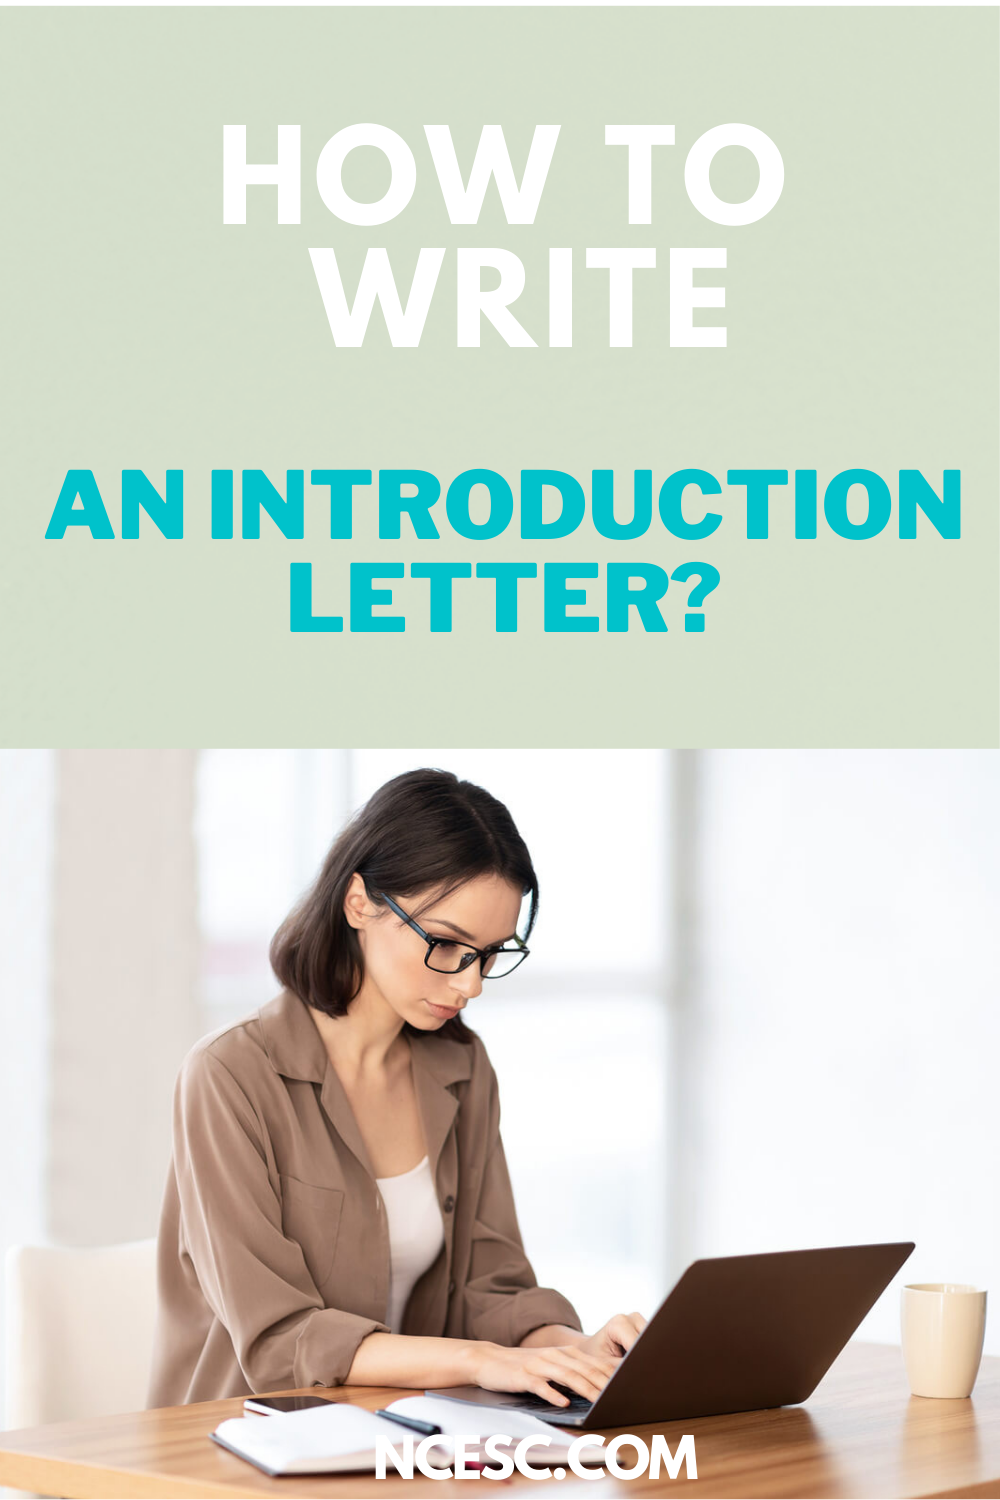 how to write an introduction letter guide